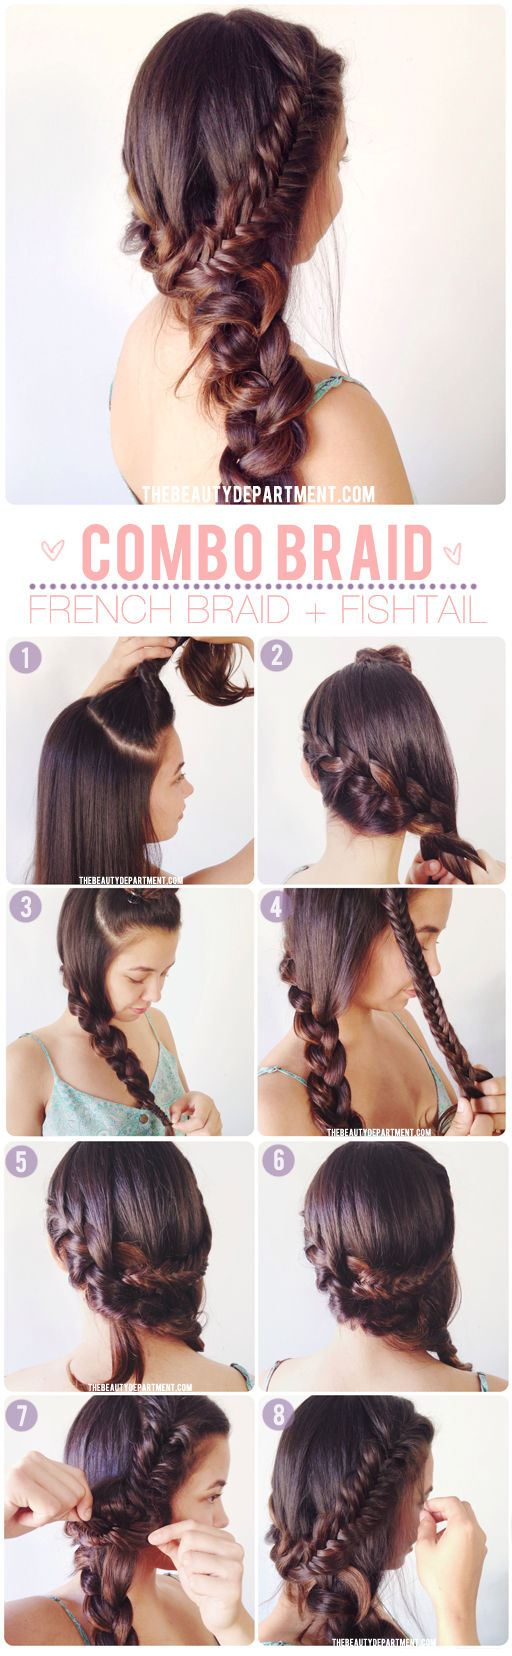 do it yourself - 10 braided hairstyles for a new romantic lookall